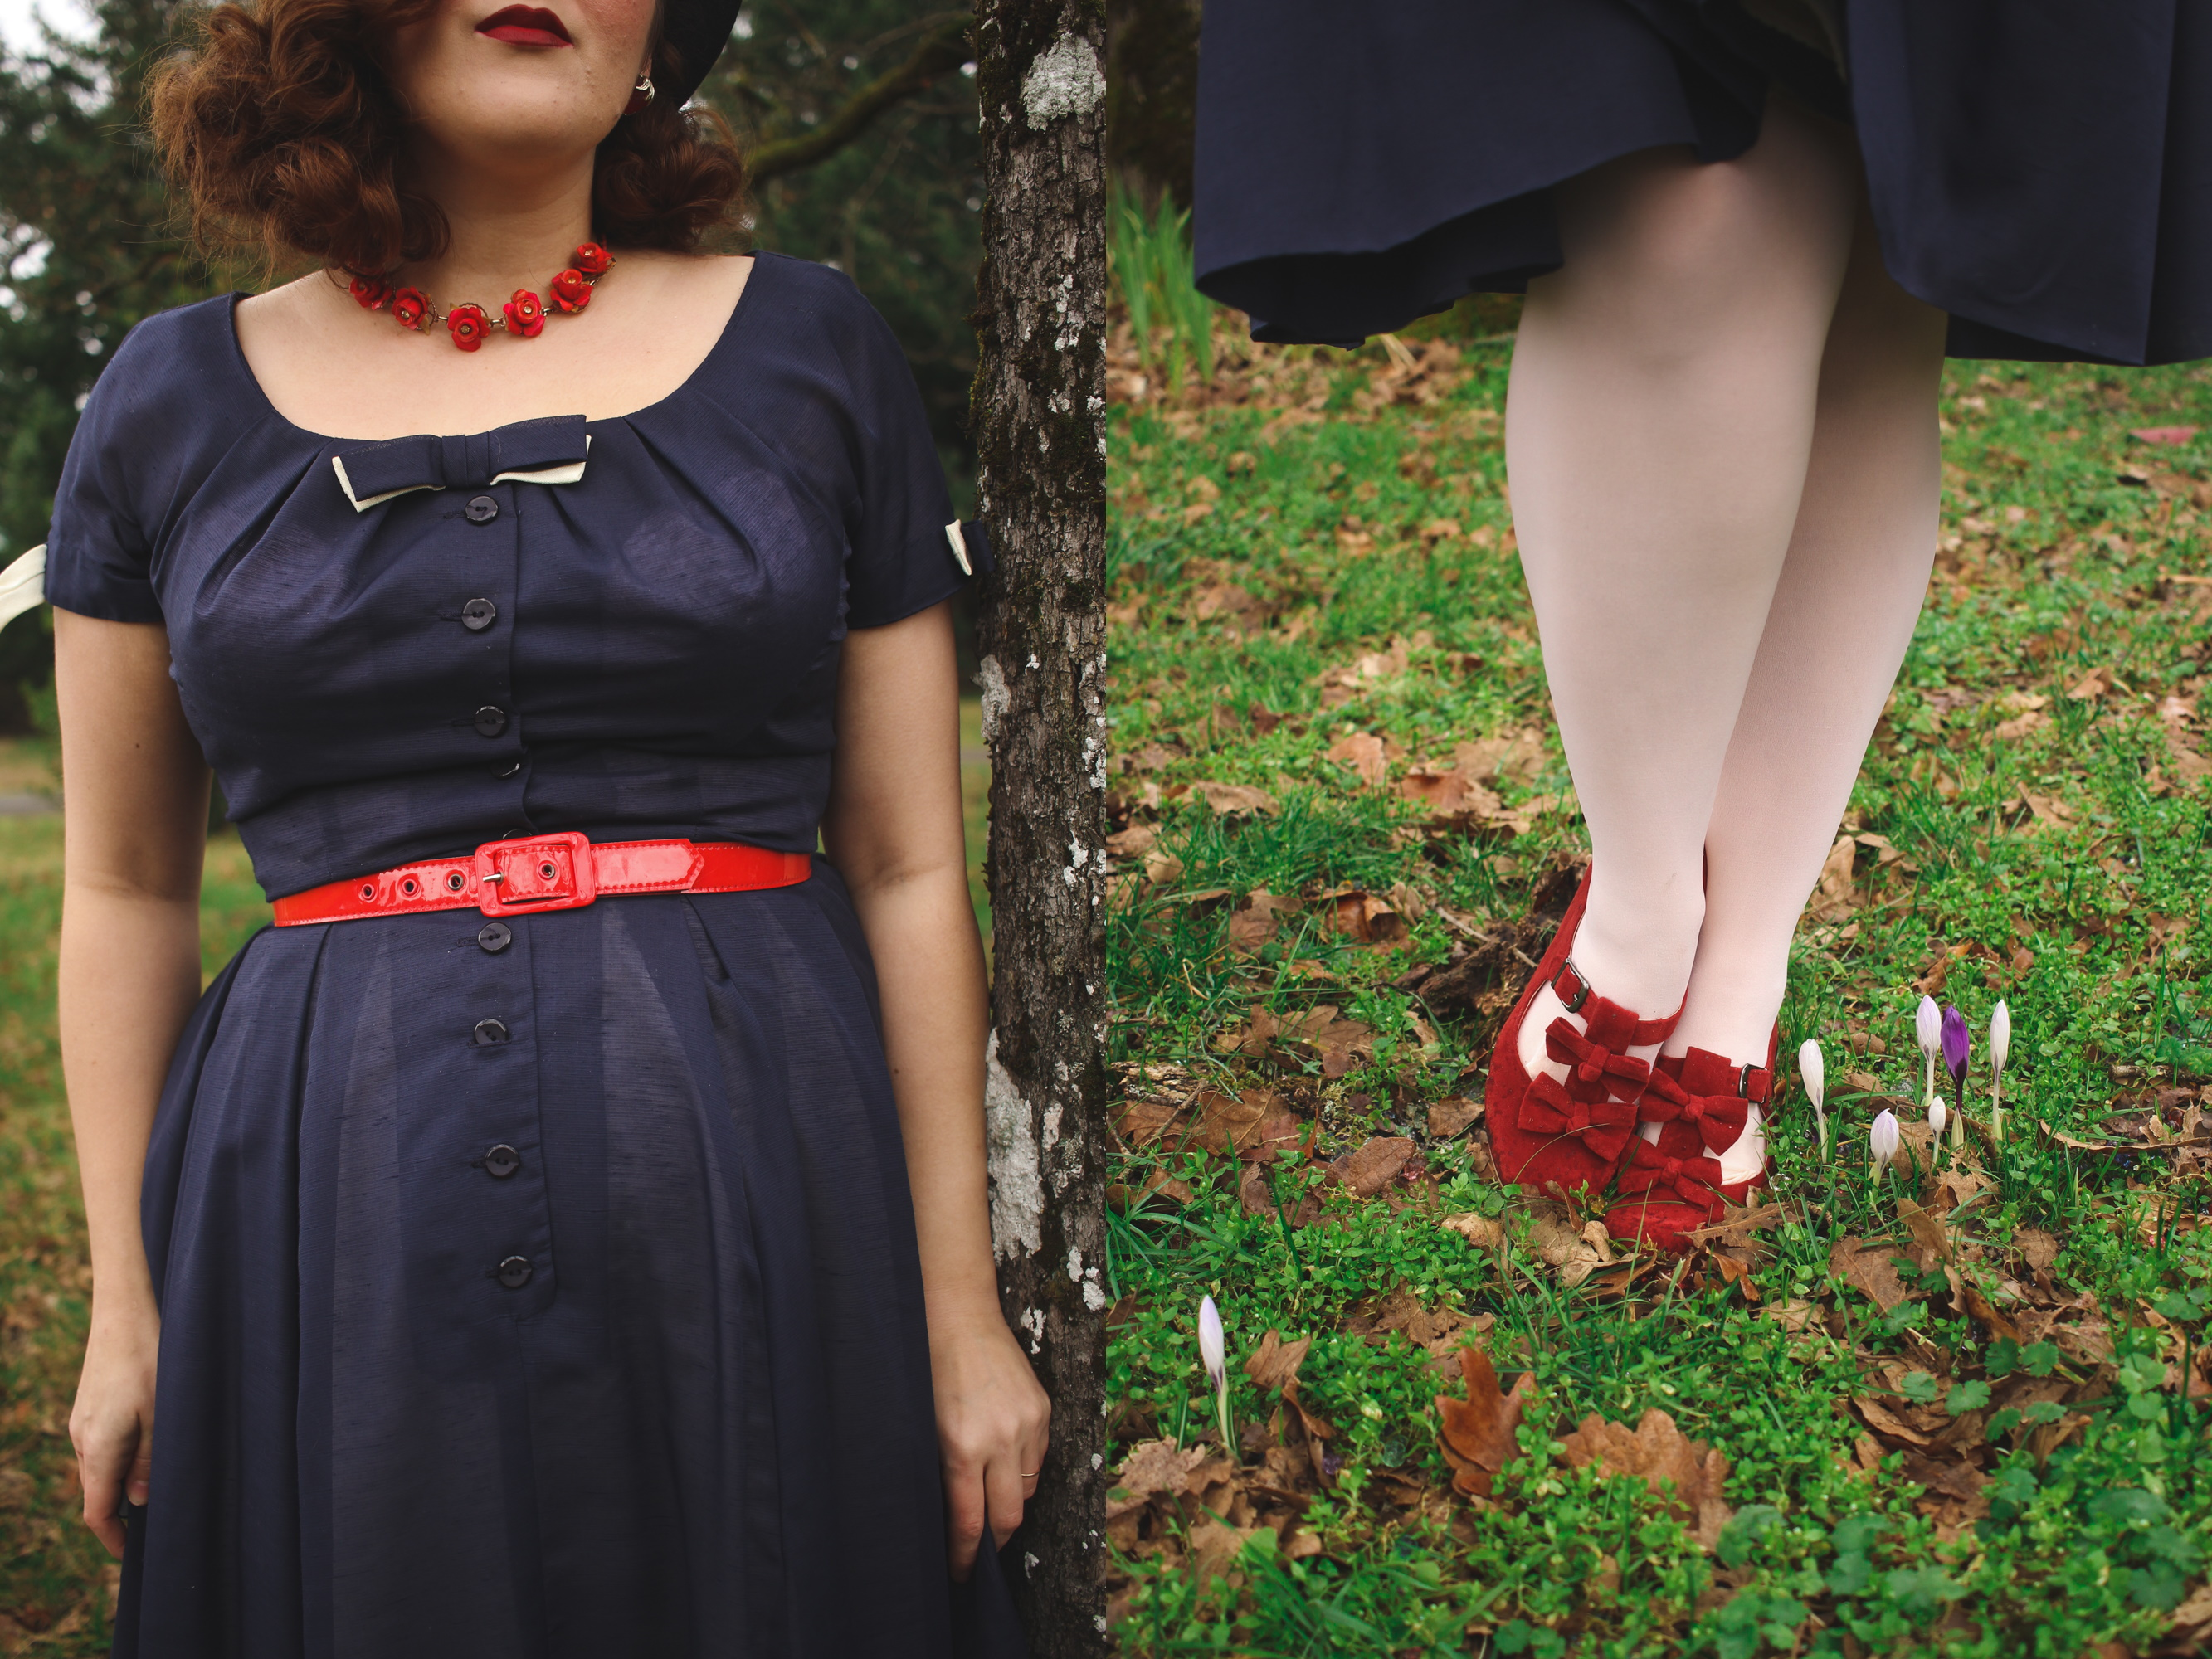 Details of a vintage navy dress and red bow heels